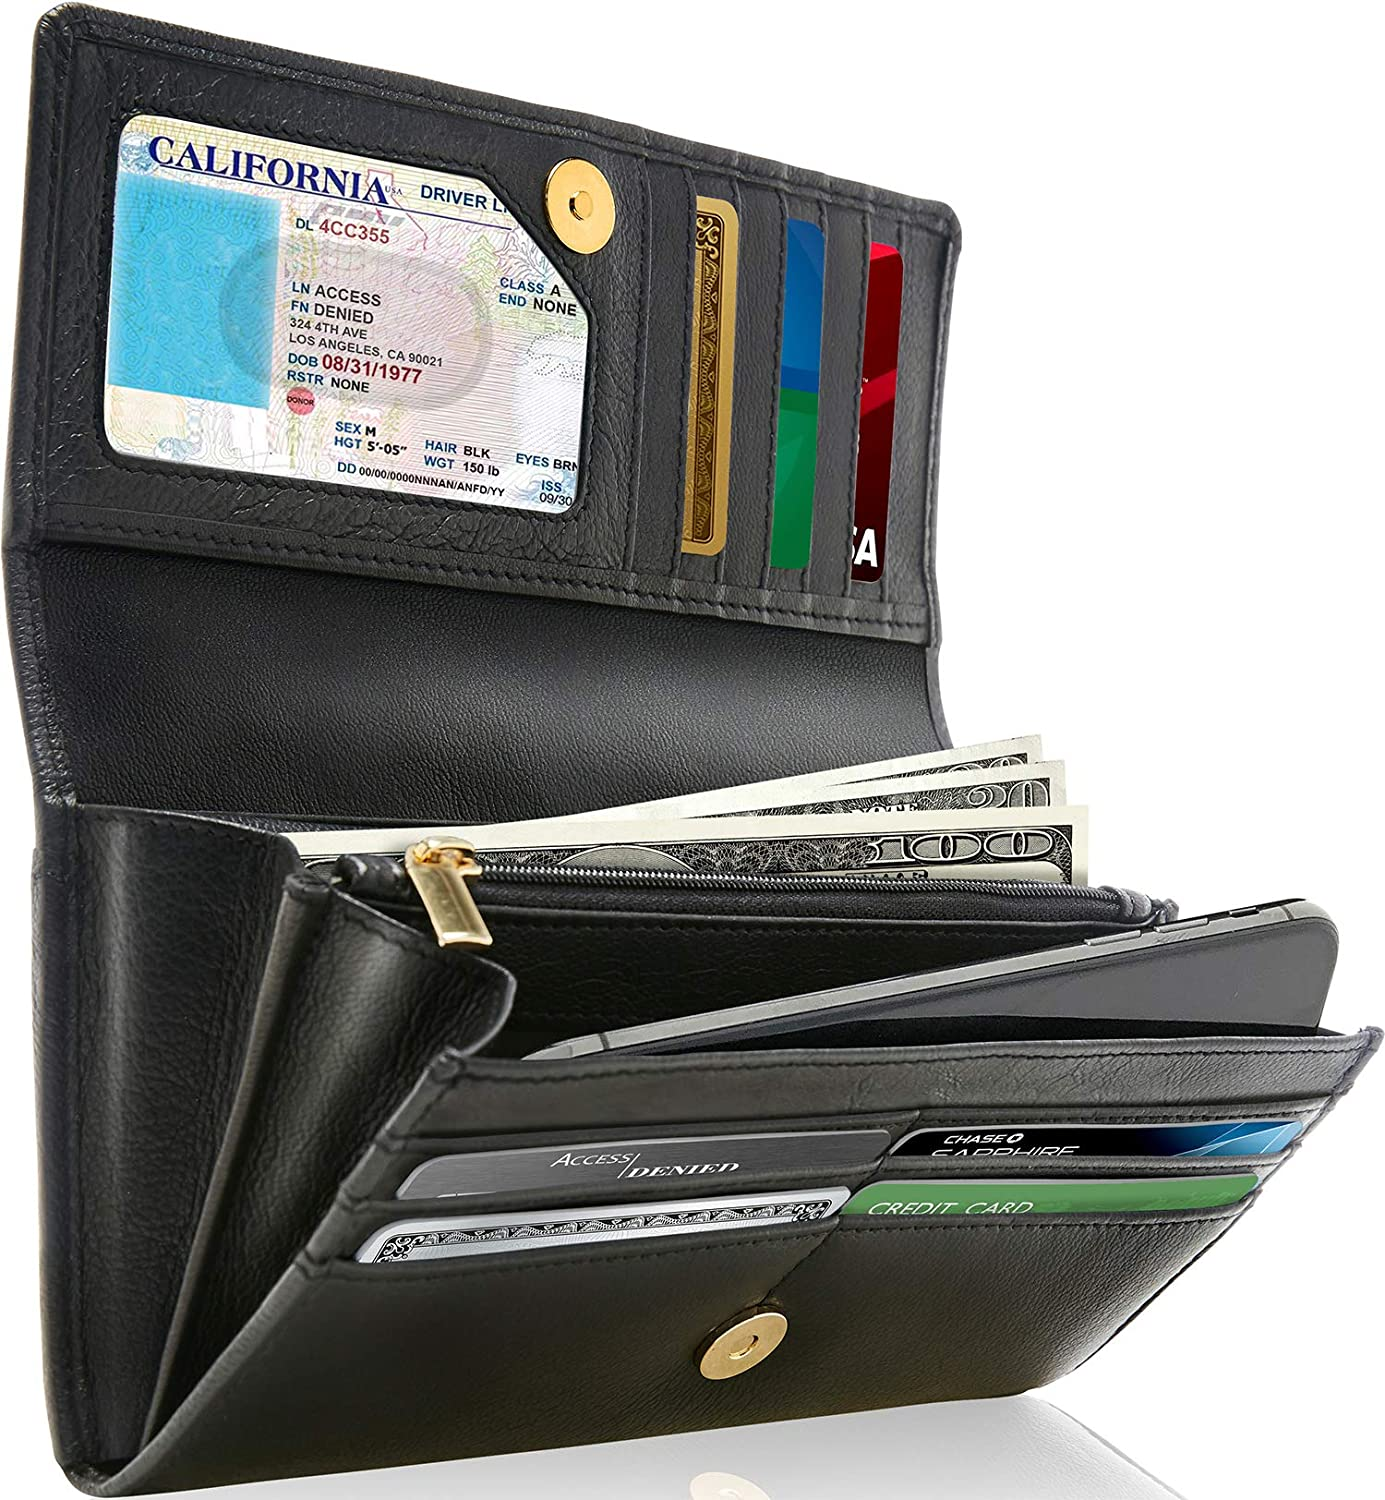 5fd73bd9d3d Leather Clutch RFID Wallets For Women - Large Womens Wallet Accordion Purse  Organizer With Checkbook Cover Gifts For Women